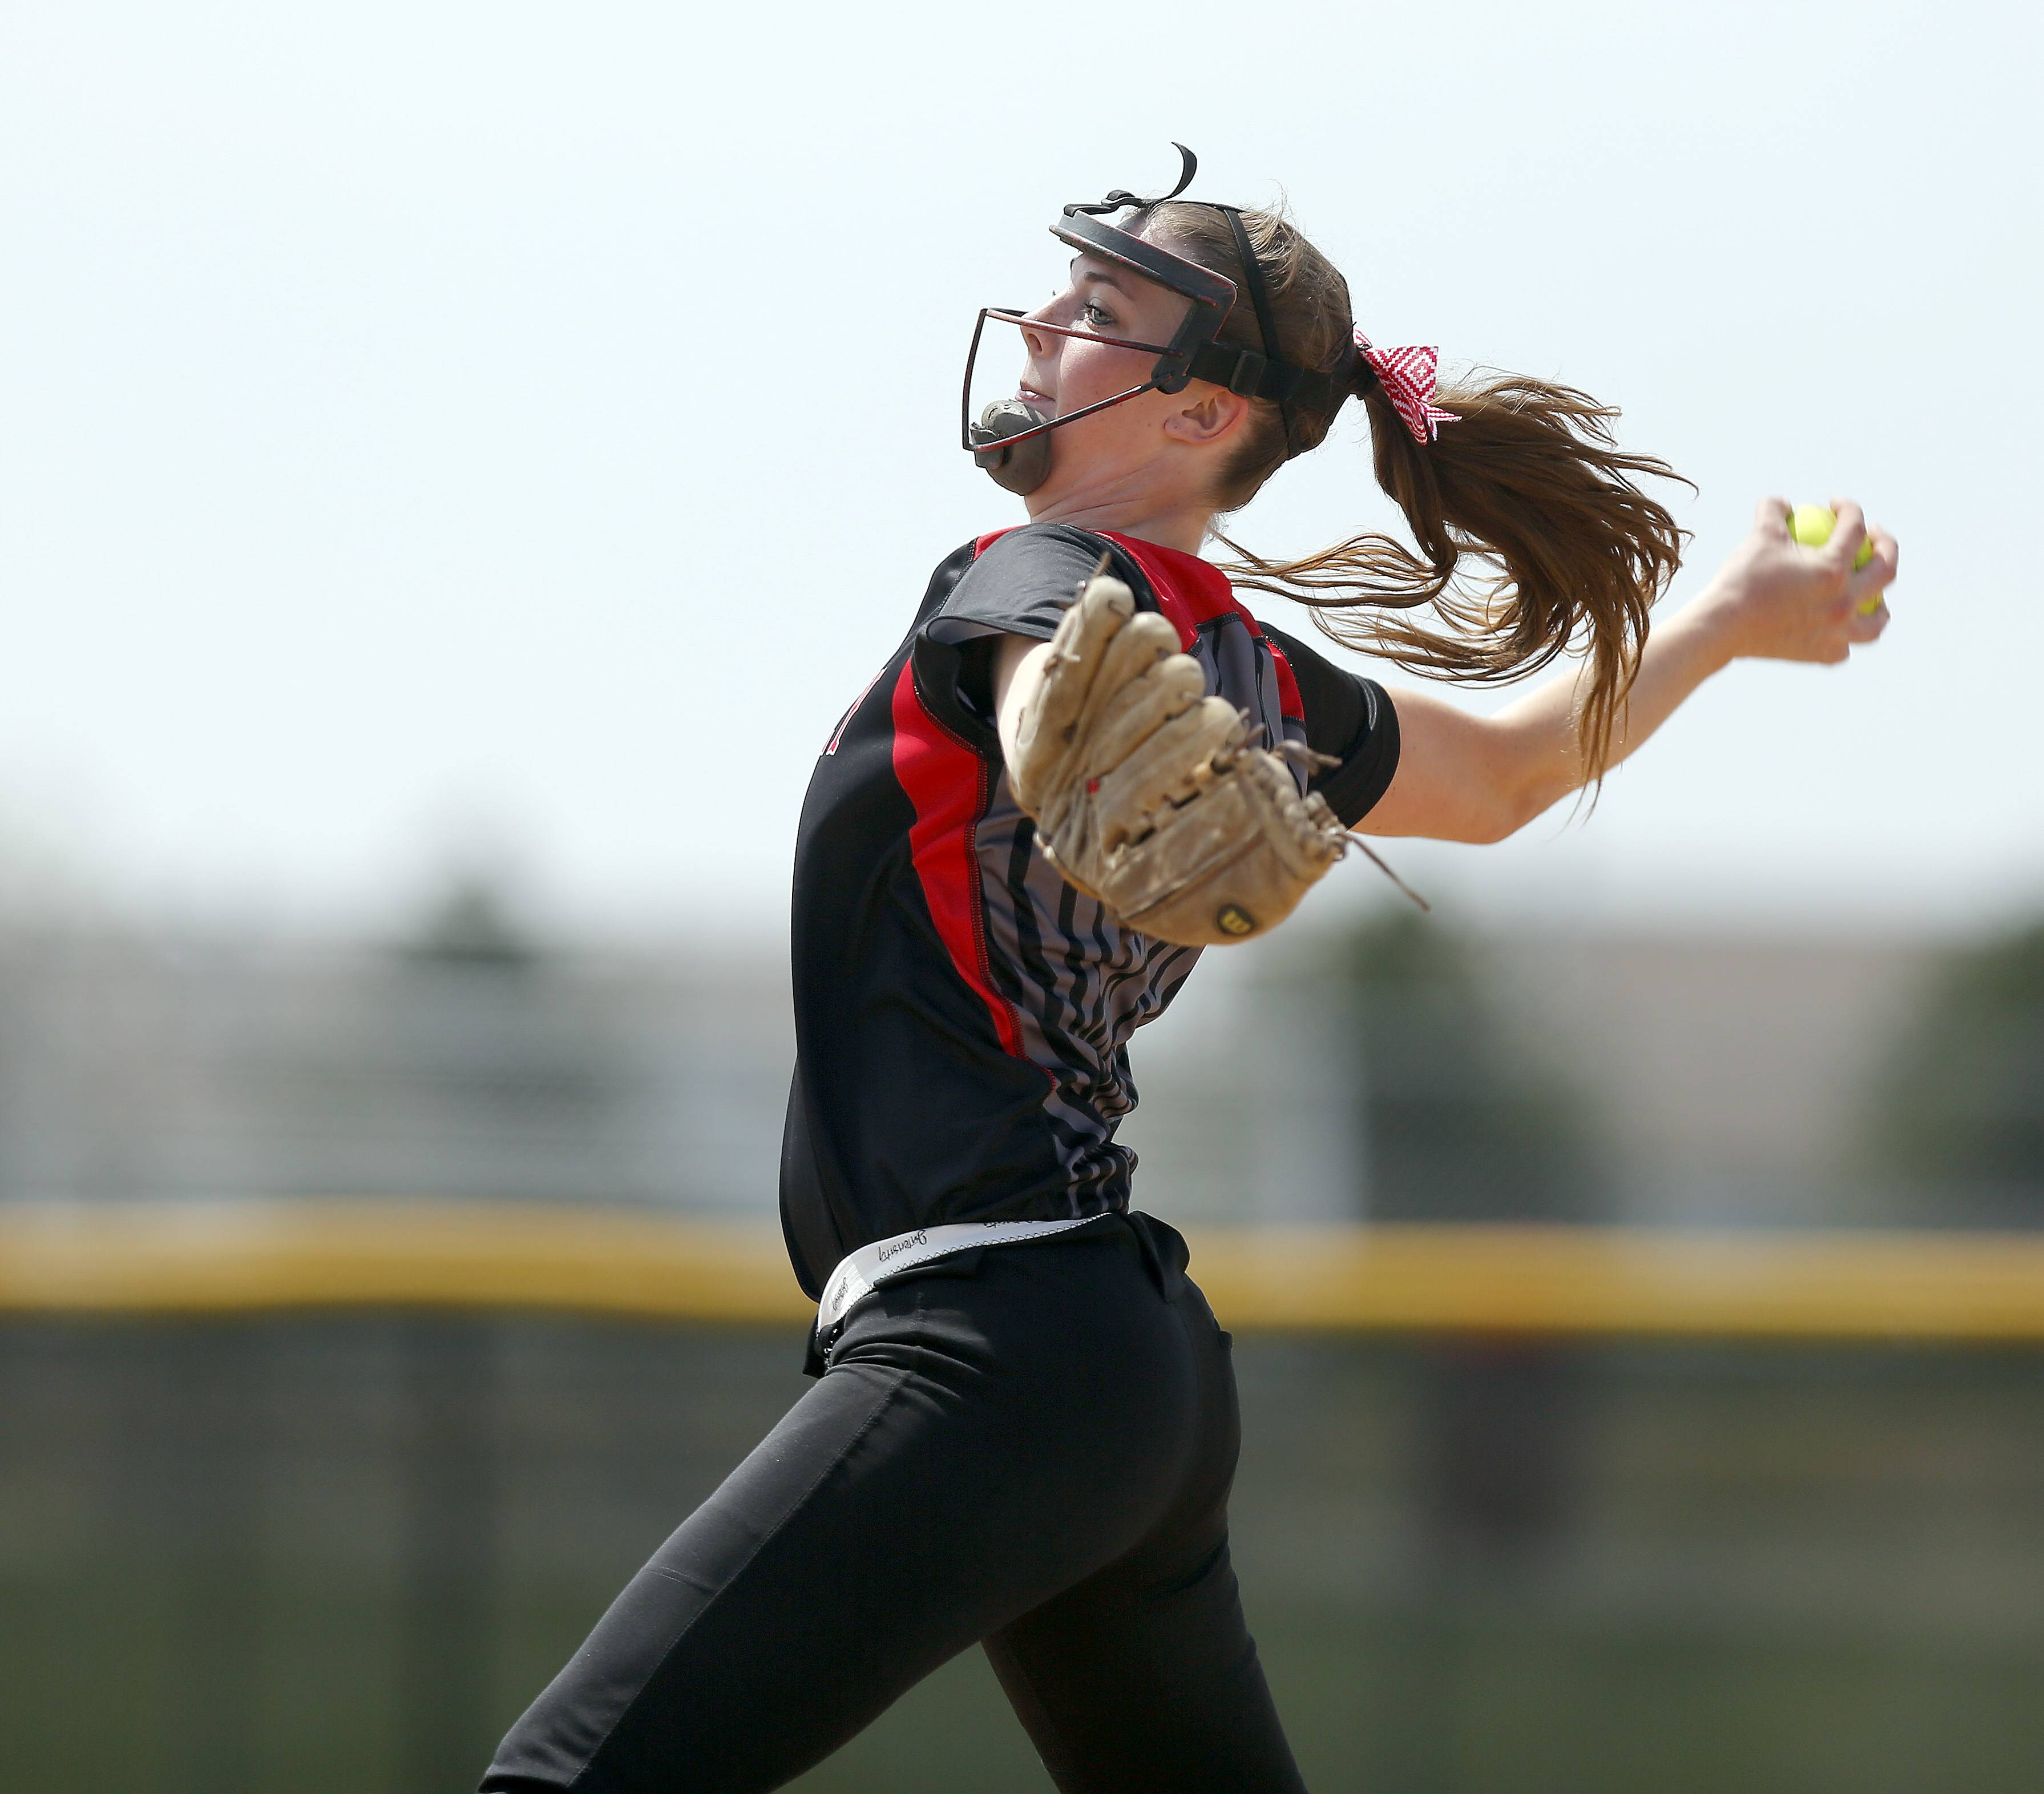 Huntley pitcher Haley Spannraft winds up during her delivery against Burlington Central at Huntley softball Saturday.